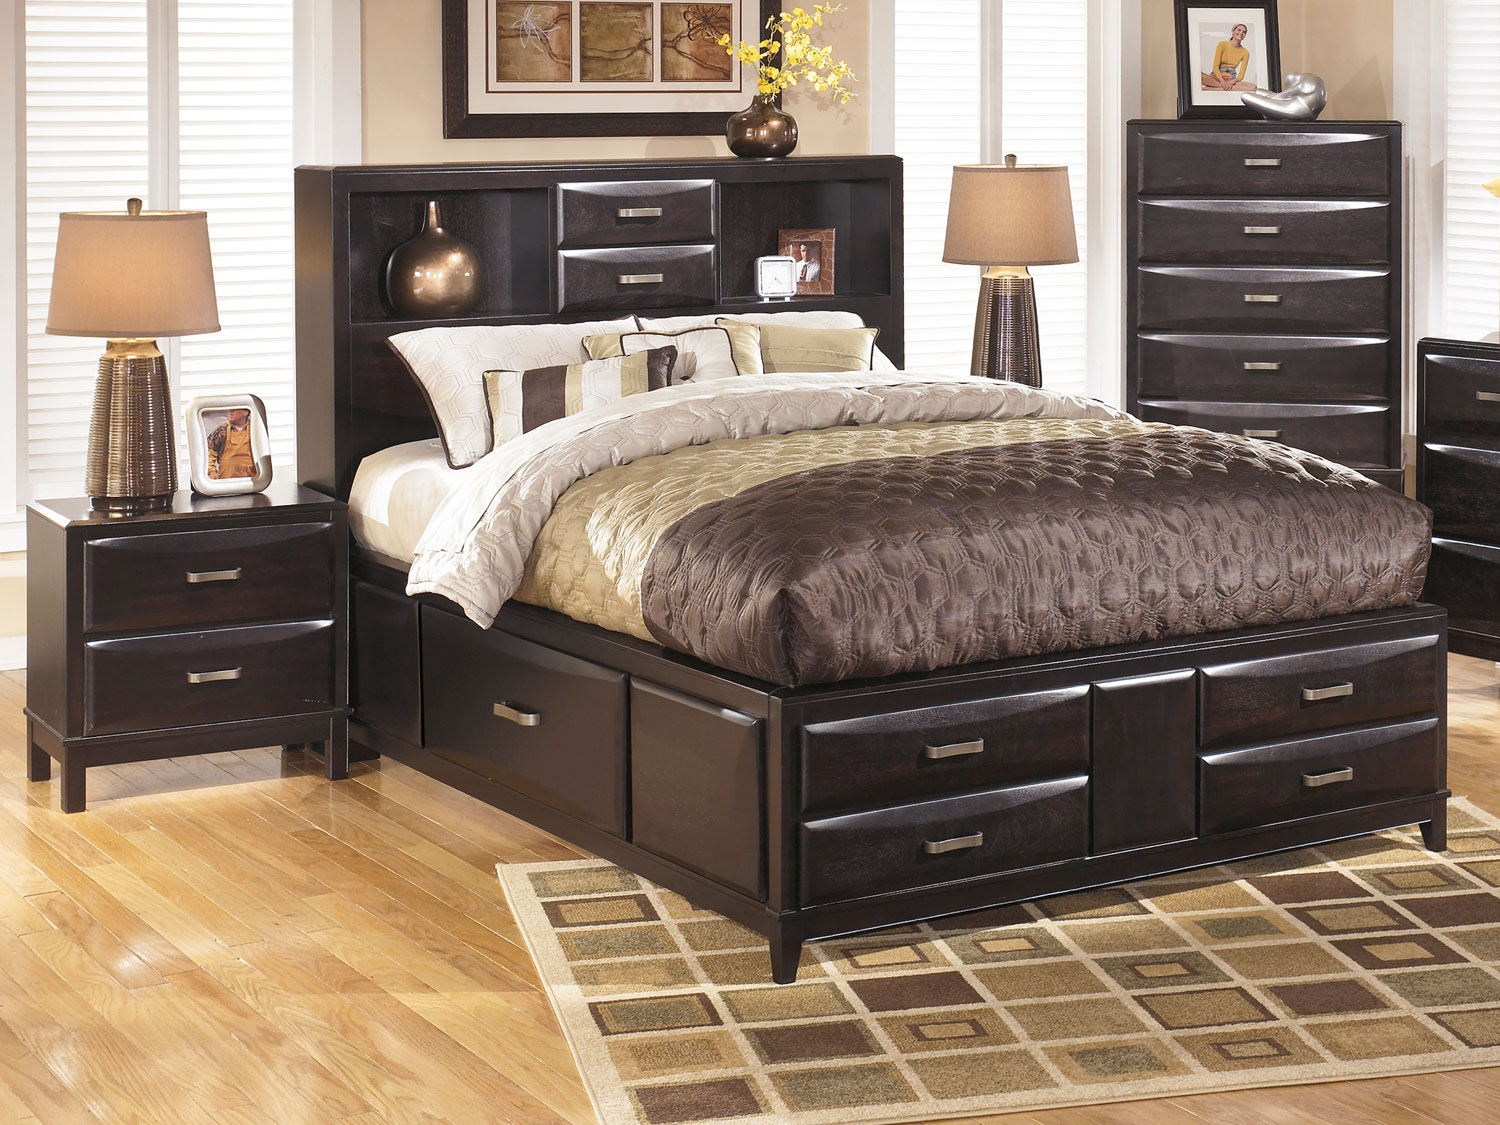 Image of: Kira Queen Storage Bed with Storage